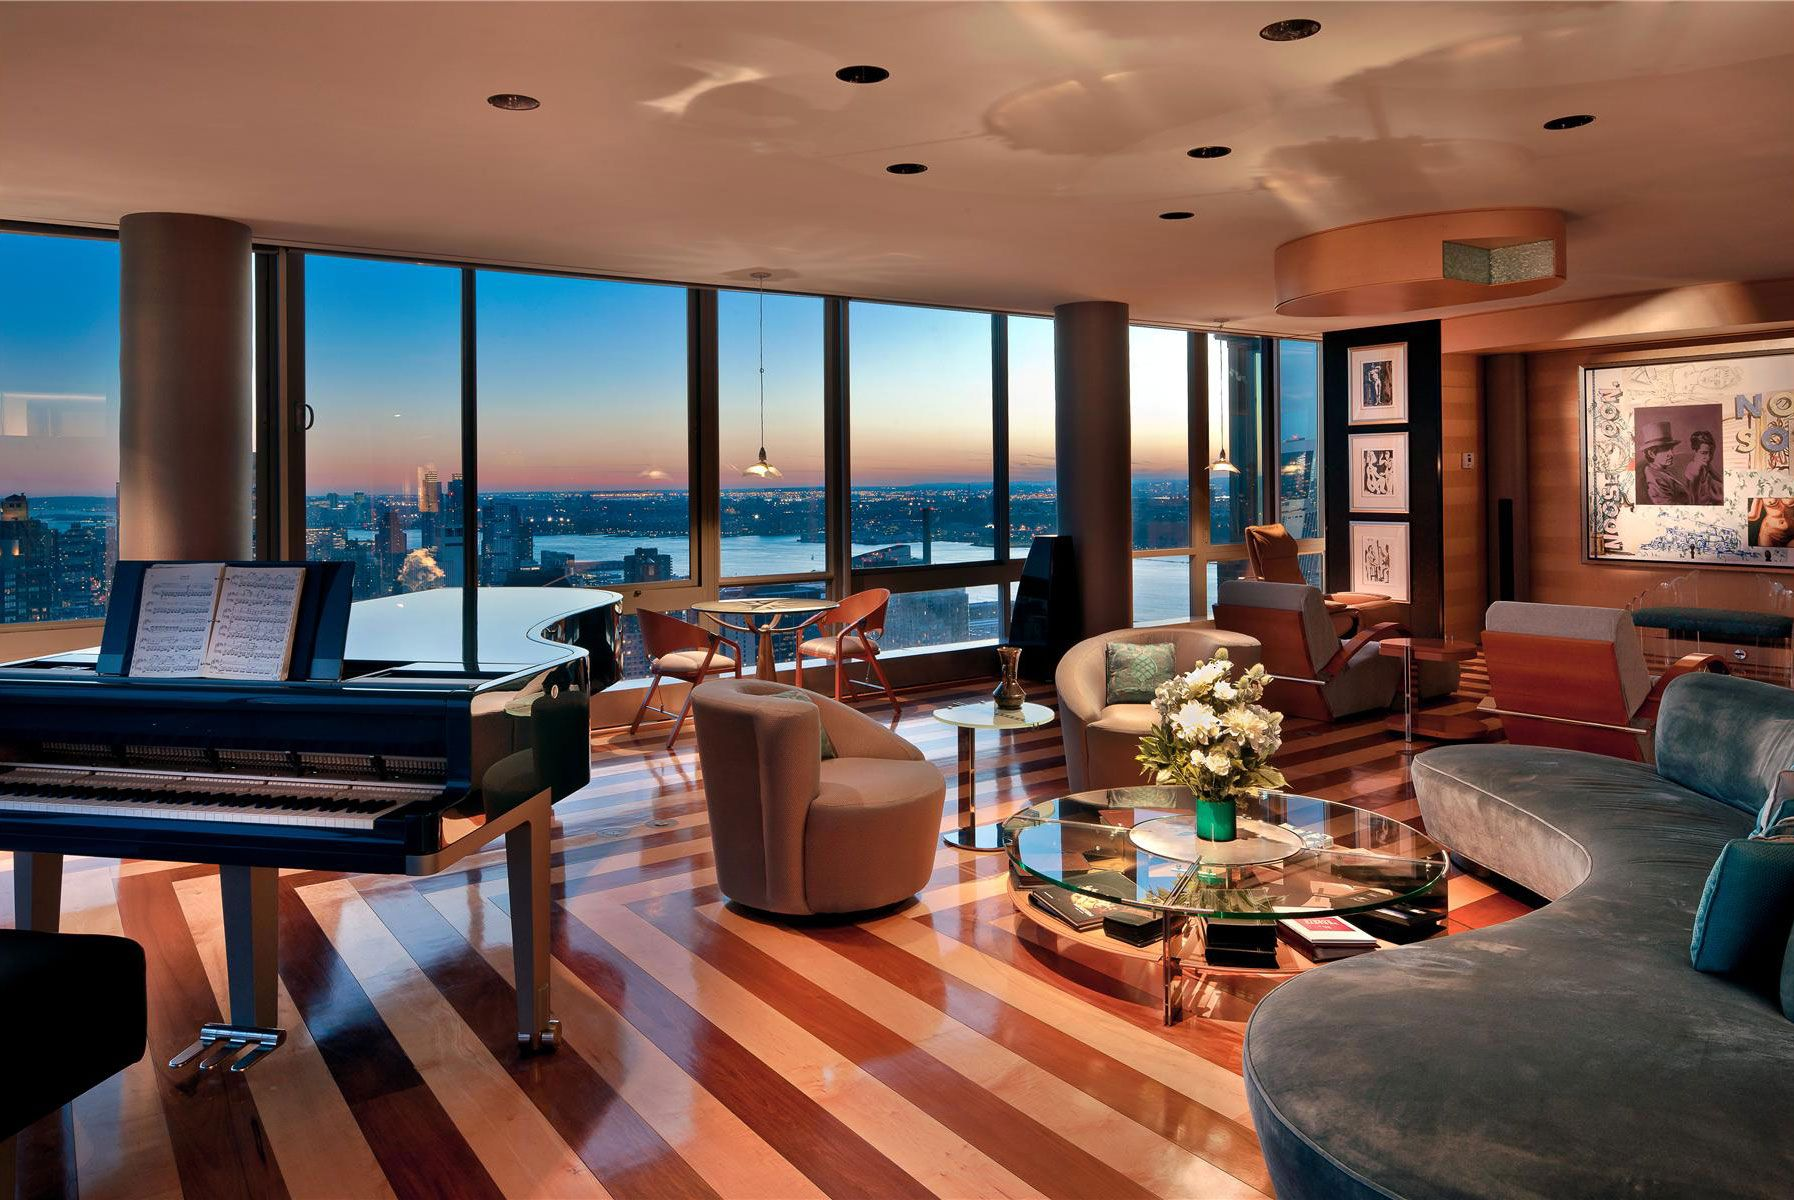 The gartner penthouse for sale in new york city for Most expensive penthouse in nyc